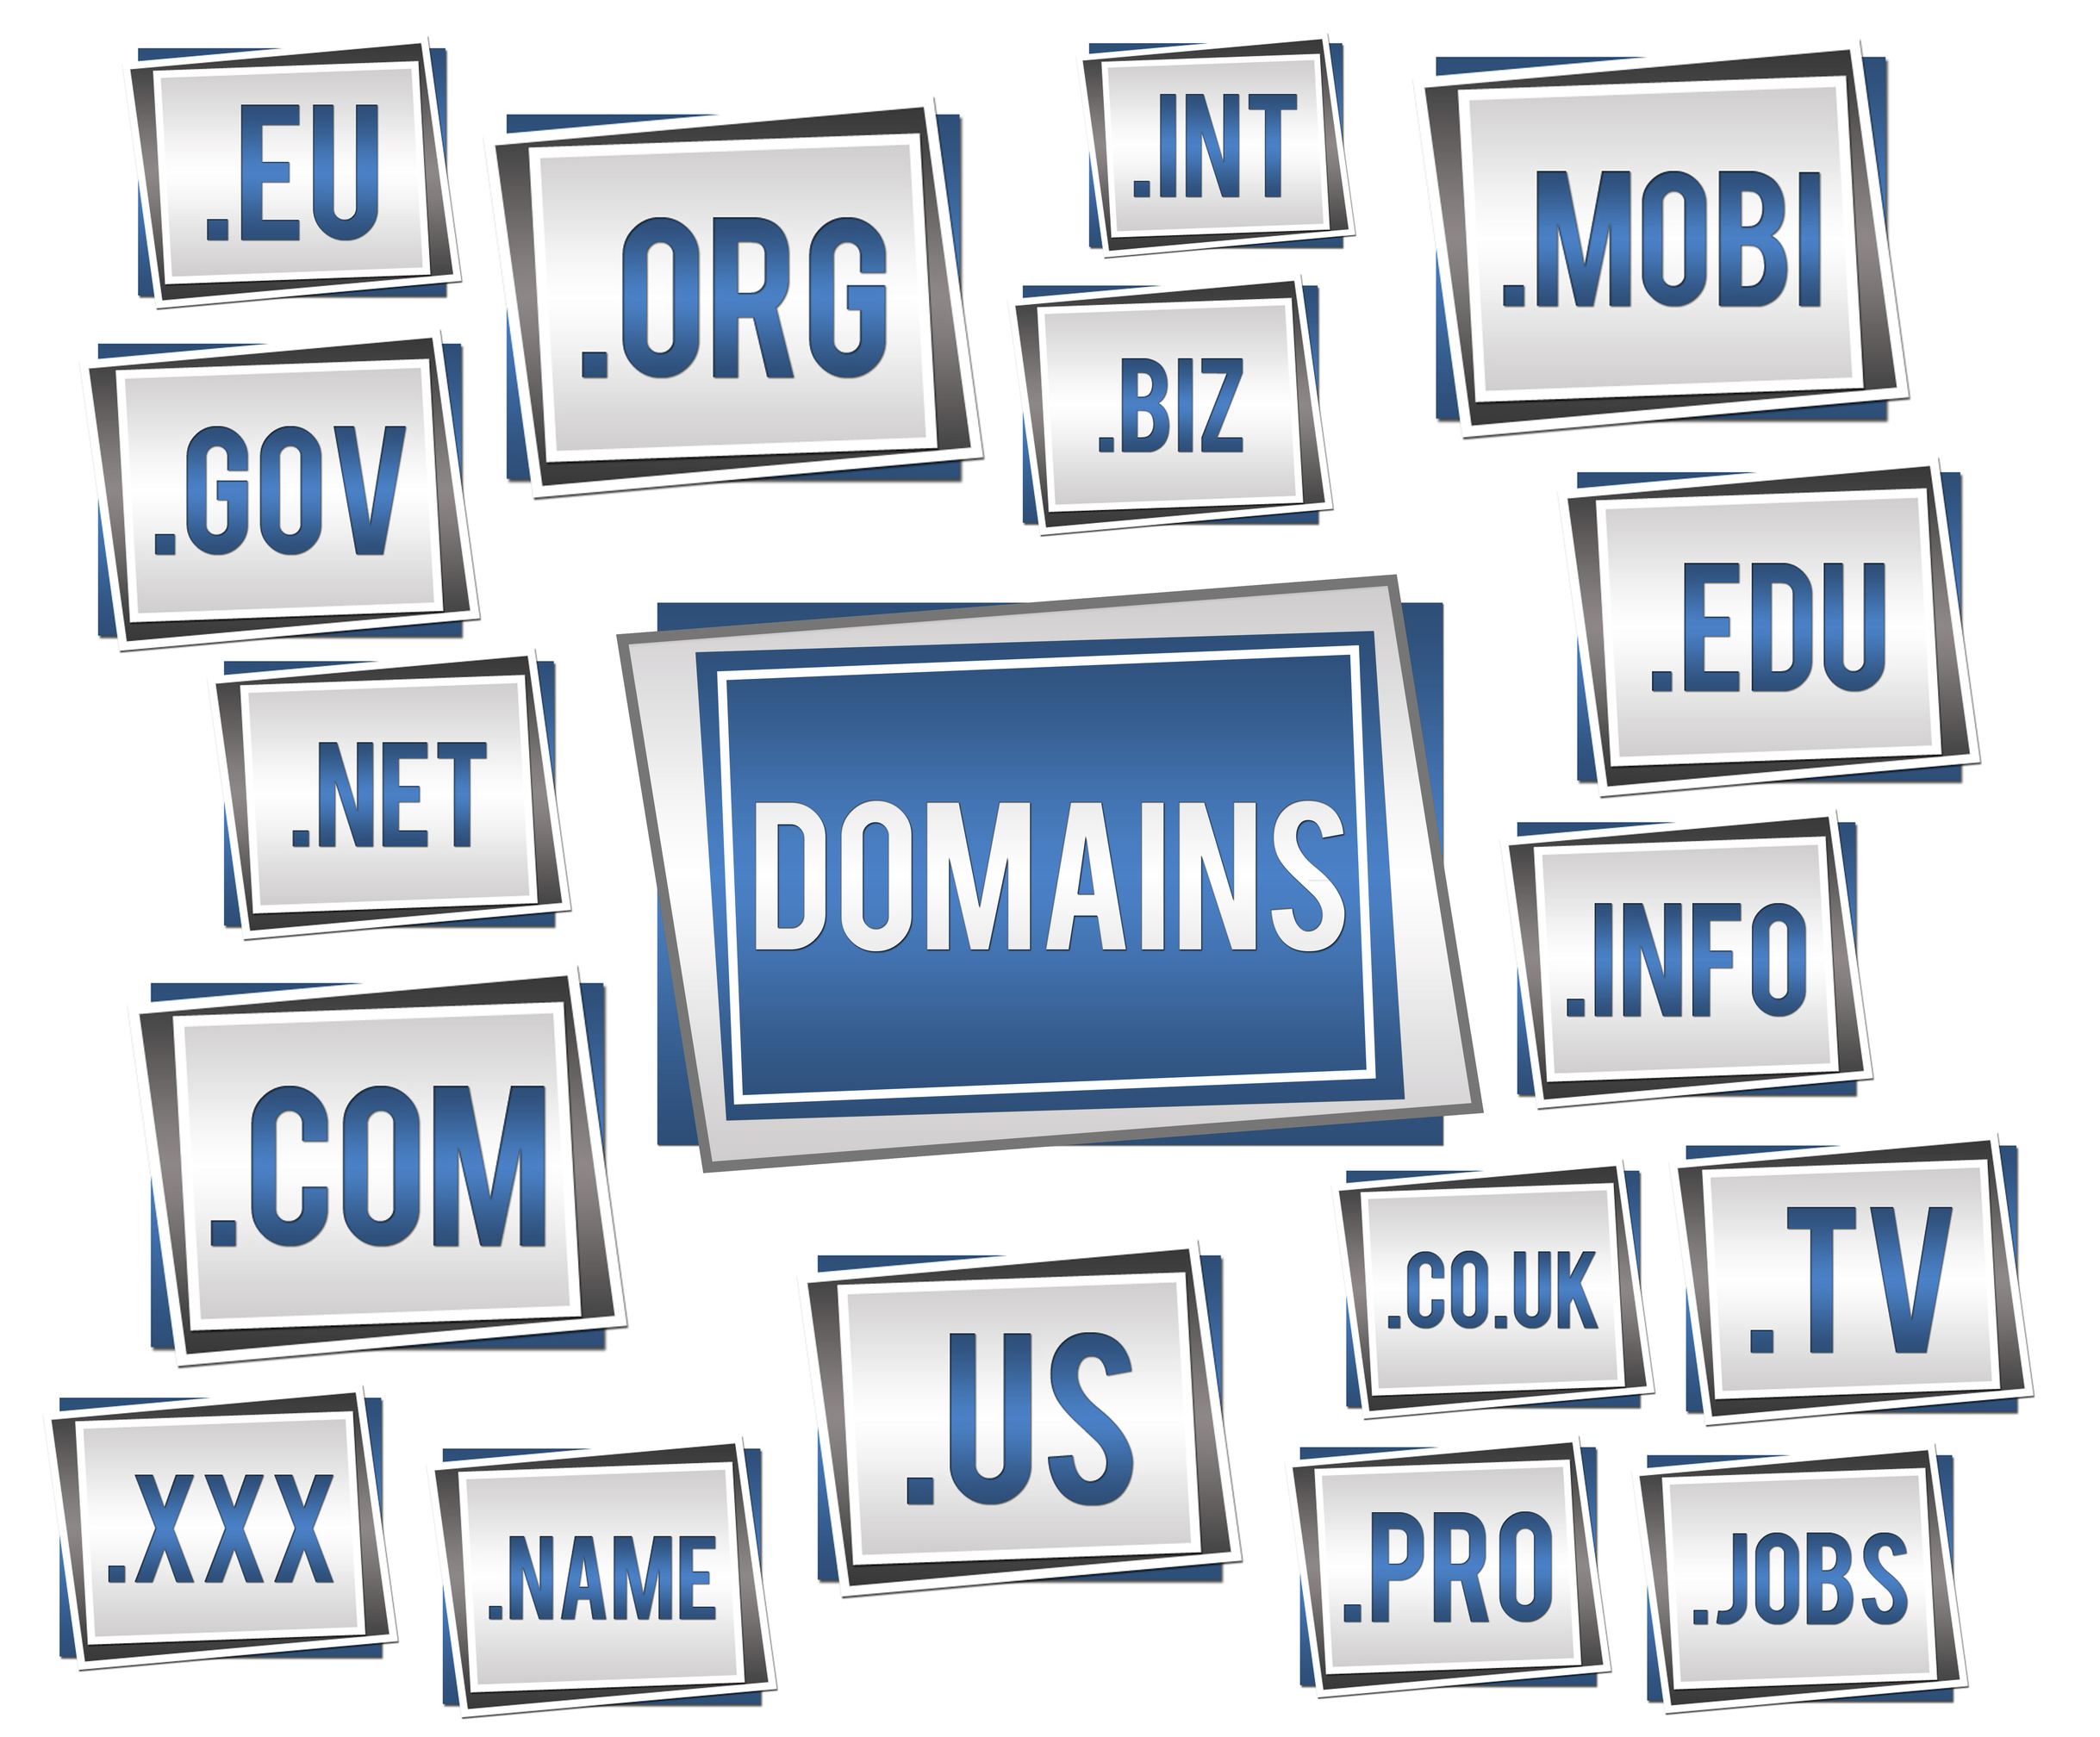 Image with various domain name list in graphical representation.